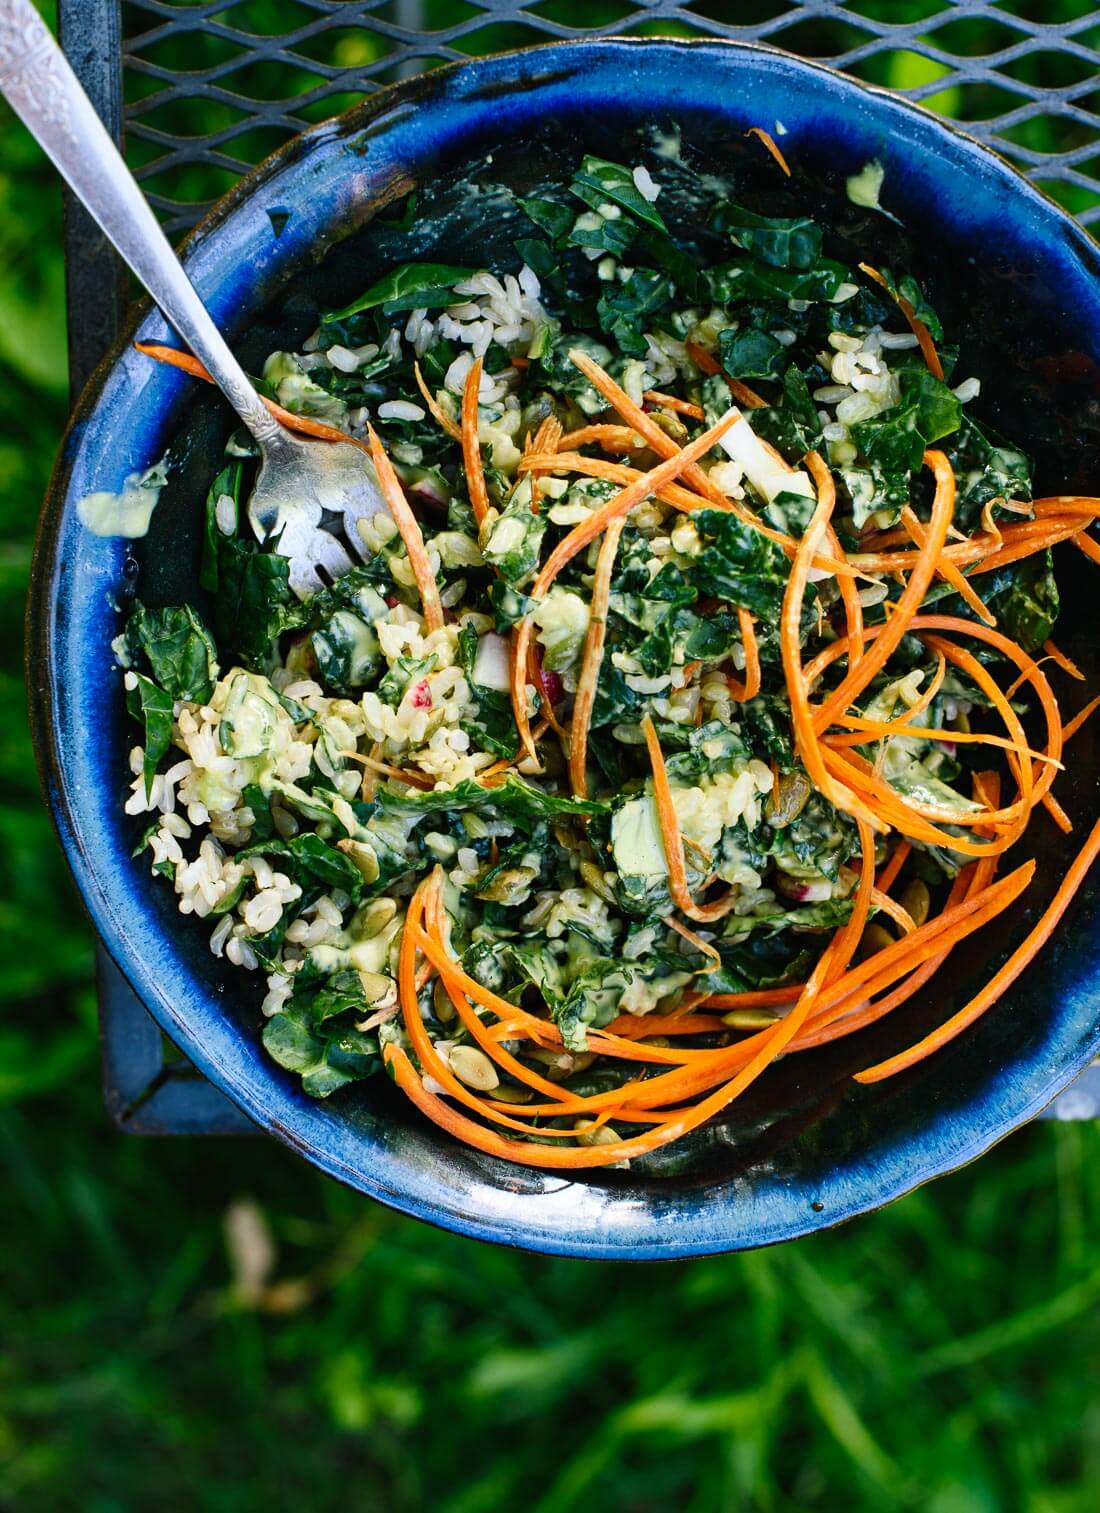 Super versatile kale salad recipe with an amazing green tahini salad dressing - cookieandkate.com